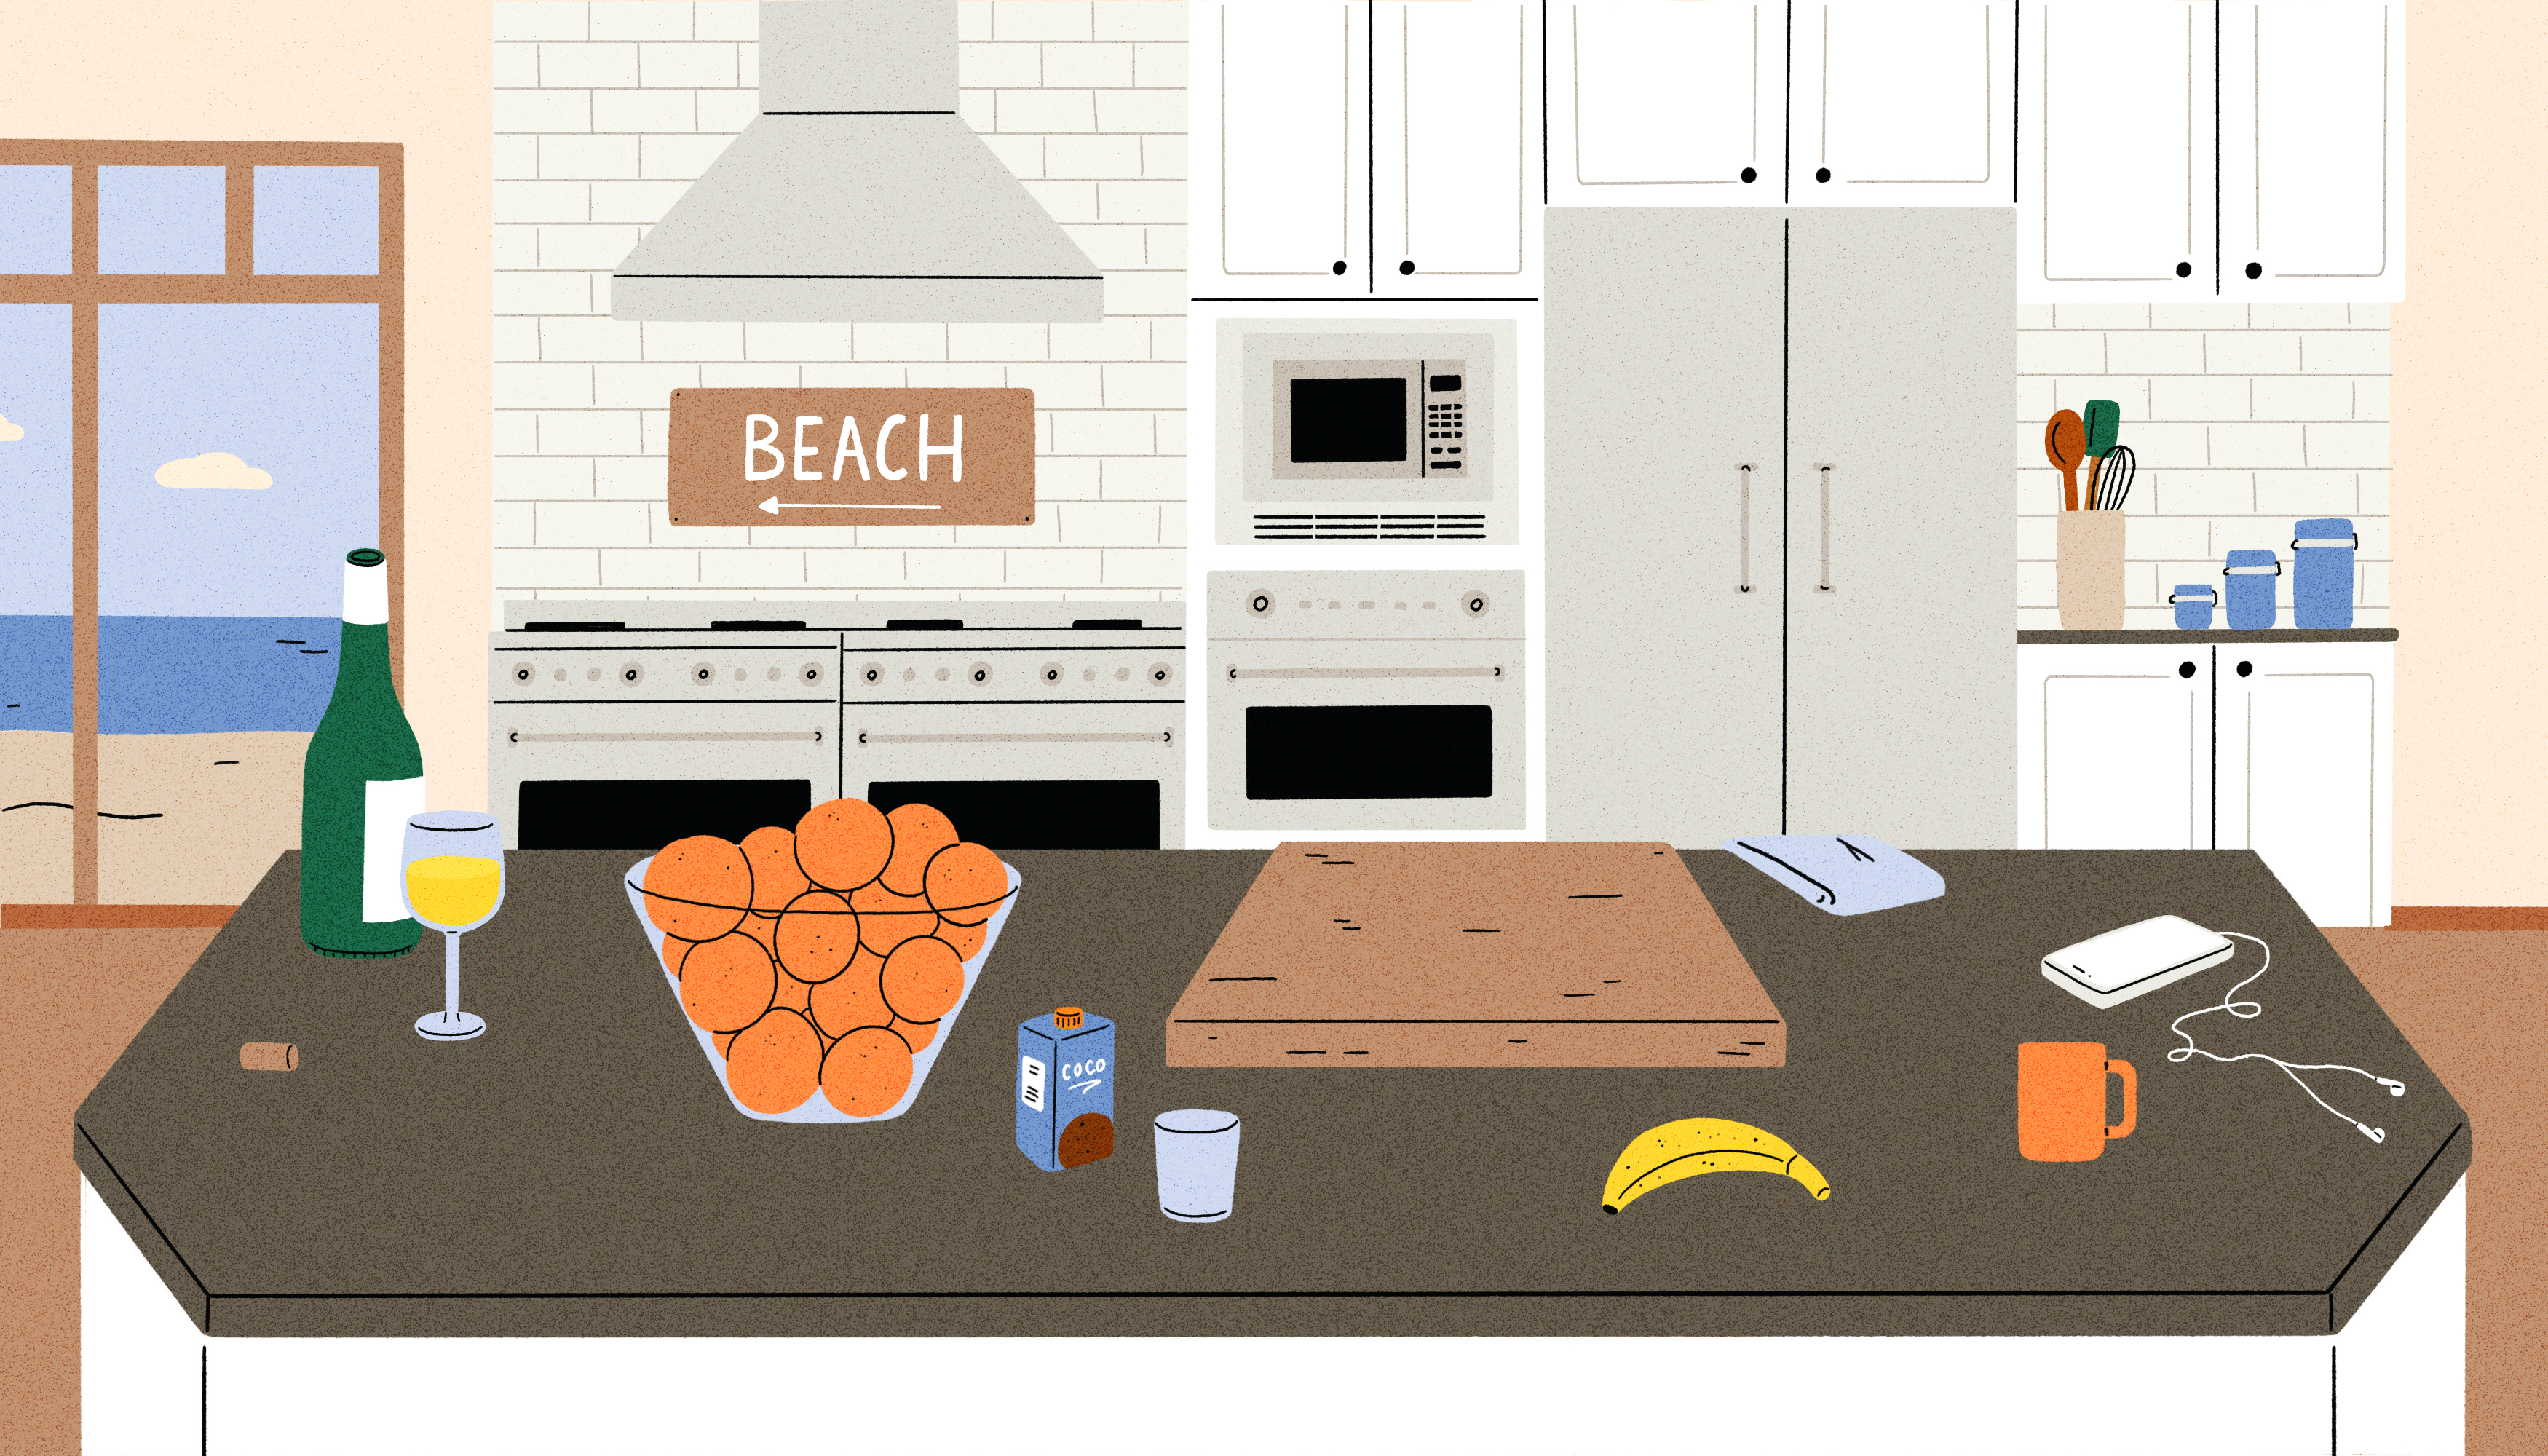 "A bottle and glass of white wine, a large bowl of oranges, a cutting board and other personal artifacts sit atop large granite island in a luxury kitchen. In the background there's a ""Beach"" sign above a hooded double stove. Illustration."